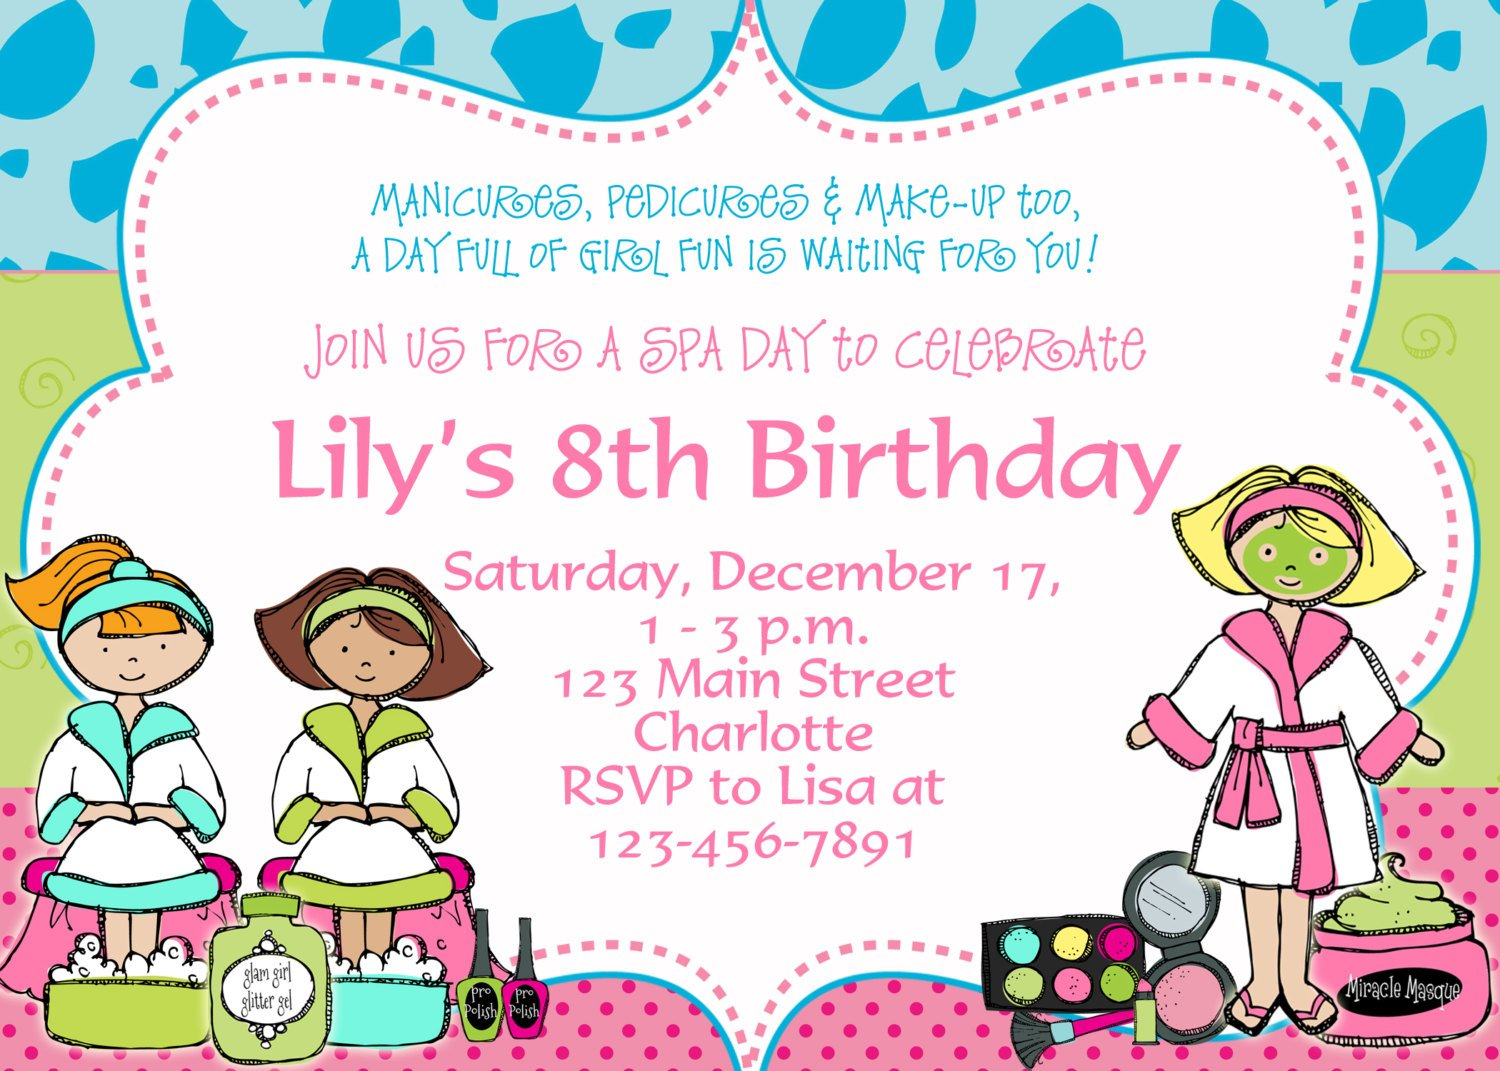 birthday party invitation templates invitations design printable spa birthday party invitation templates